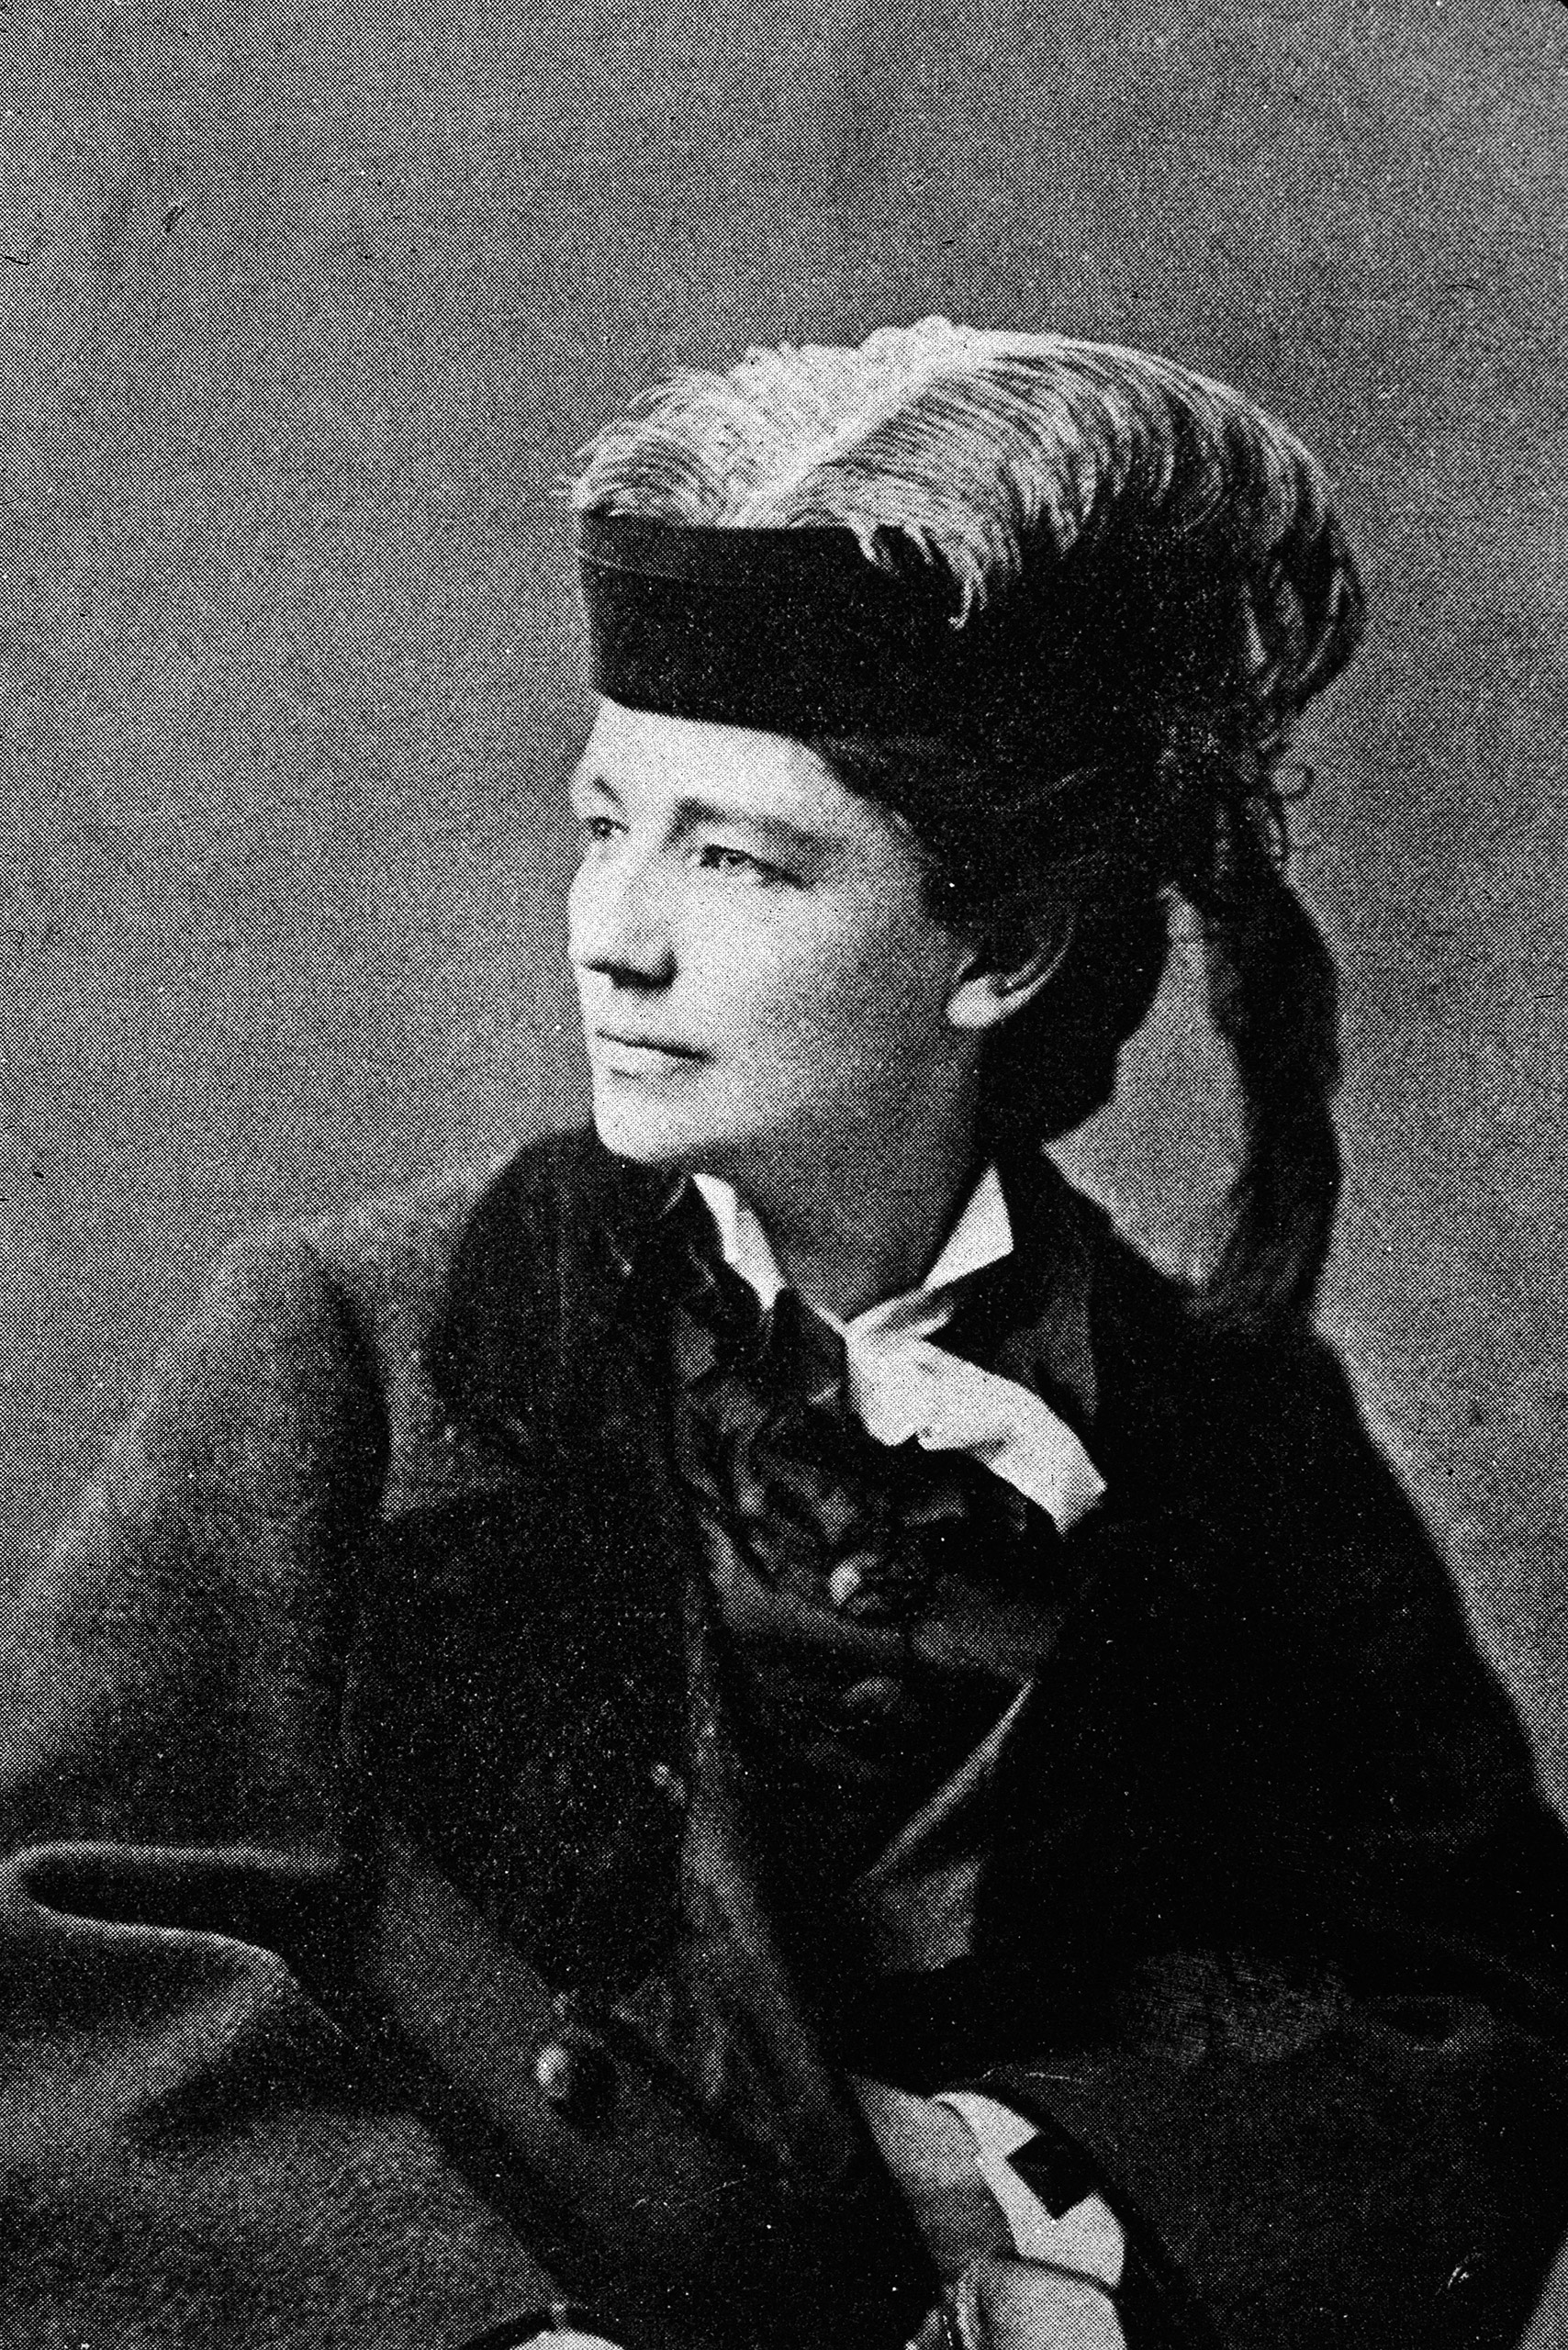 Victoria Claflin Woodhull, the first woman to run for US president from a nationally recognized ticket as the candidate of the Equal Rights Party in 1872.